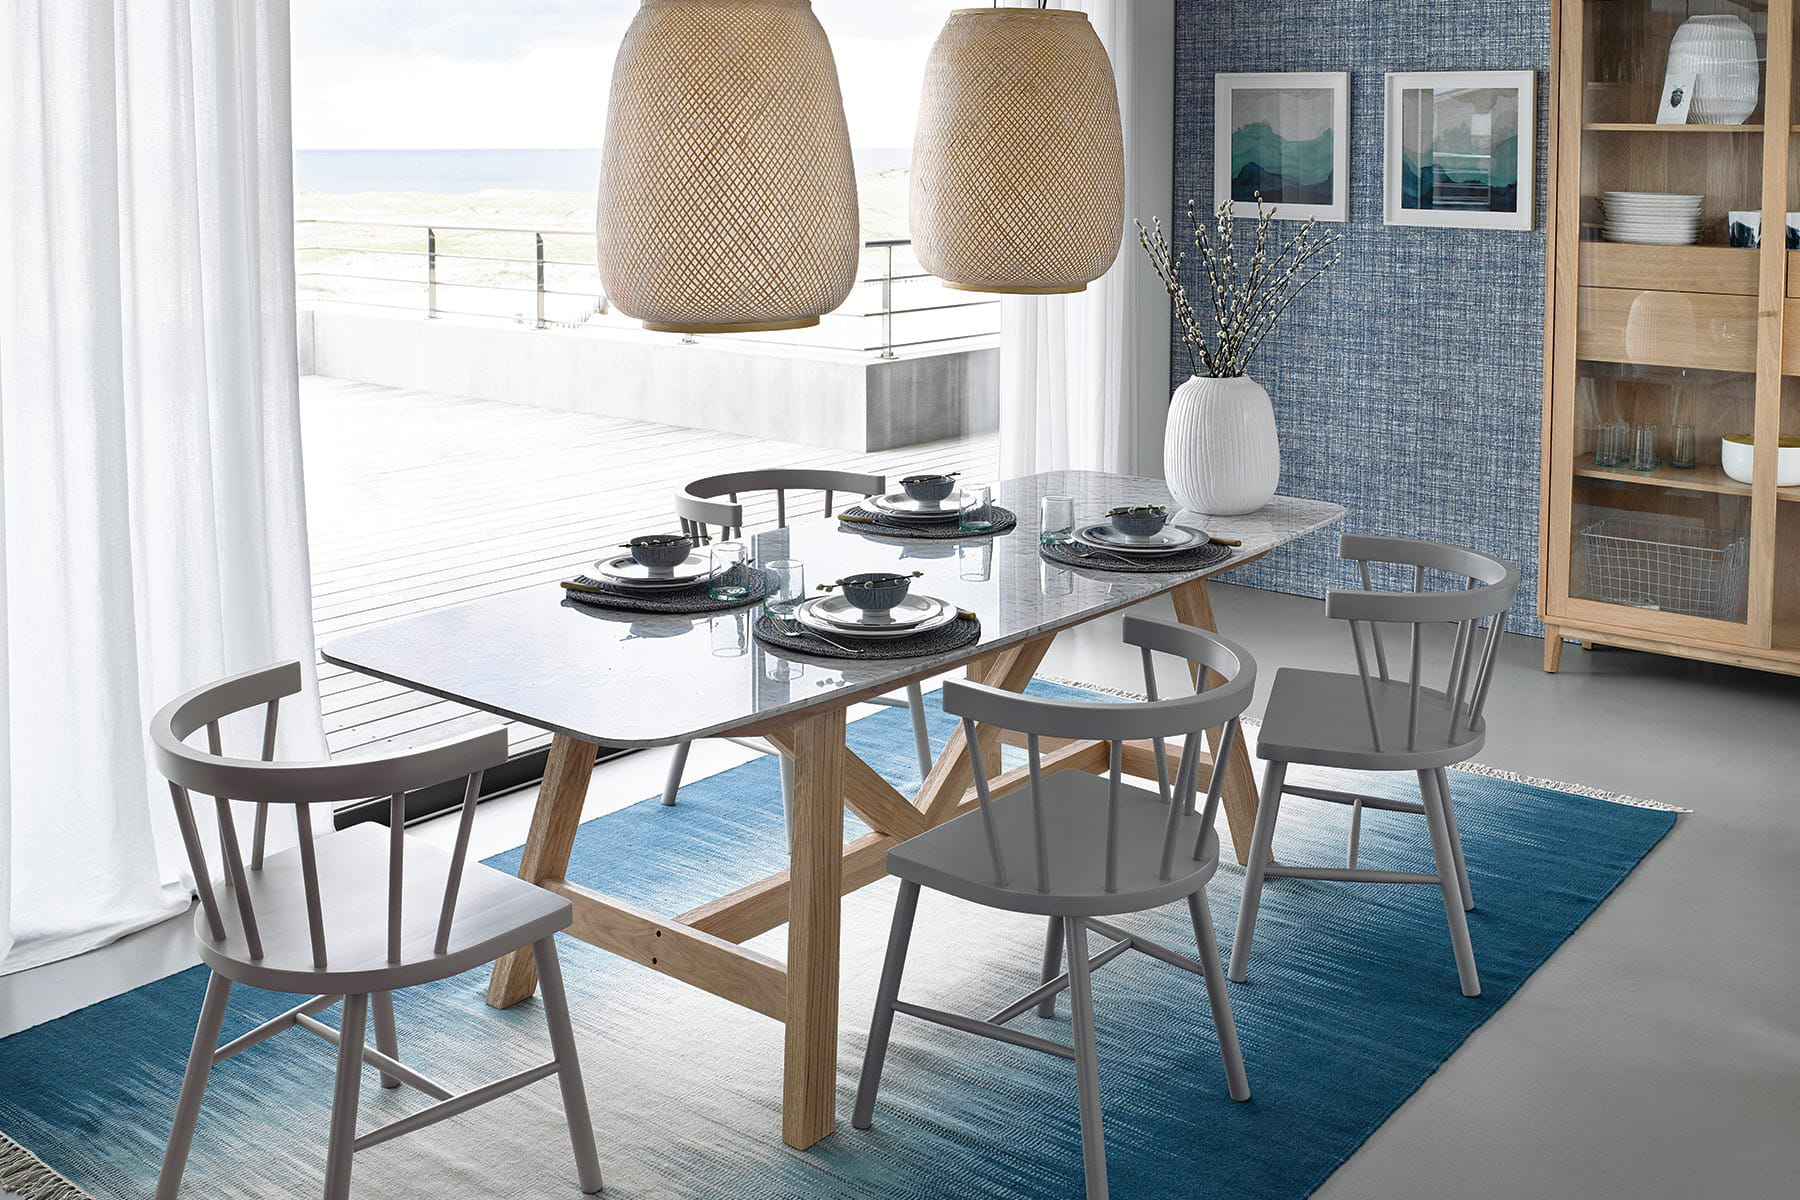 Une table manger inspiration bord de mer 21 id es for Une table a manger